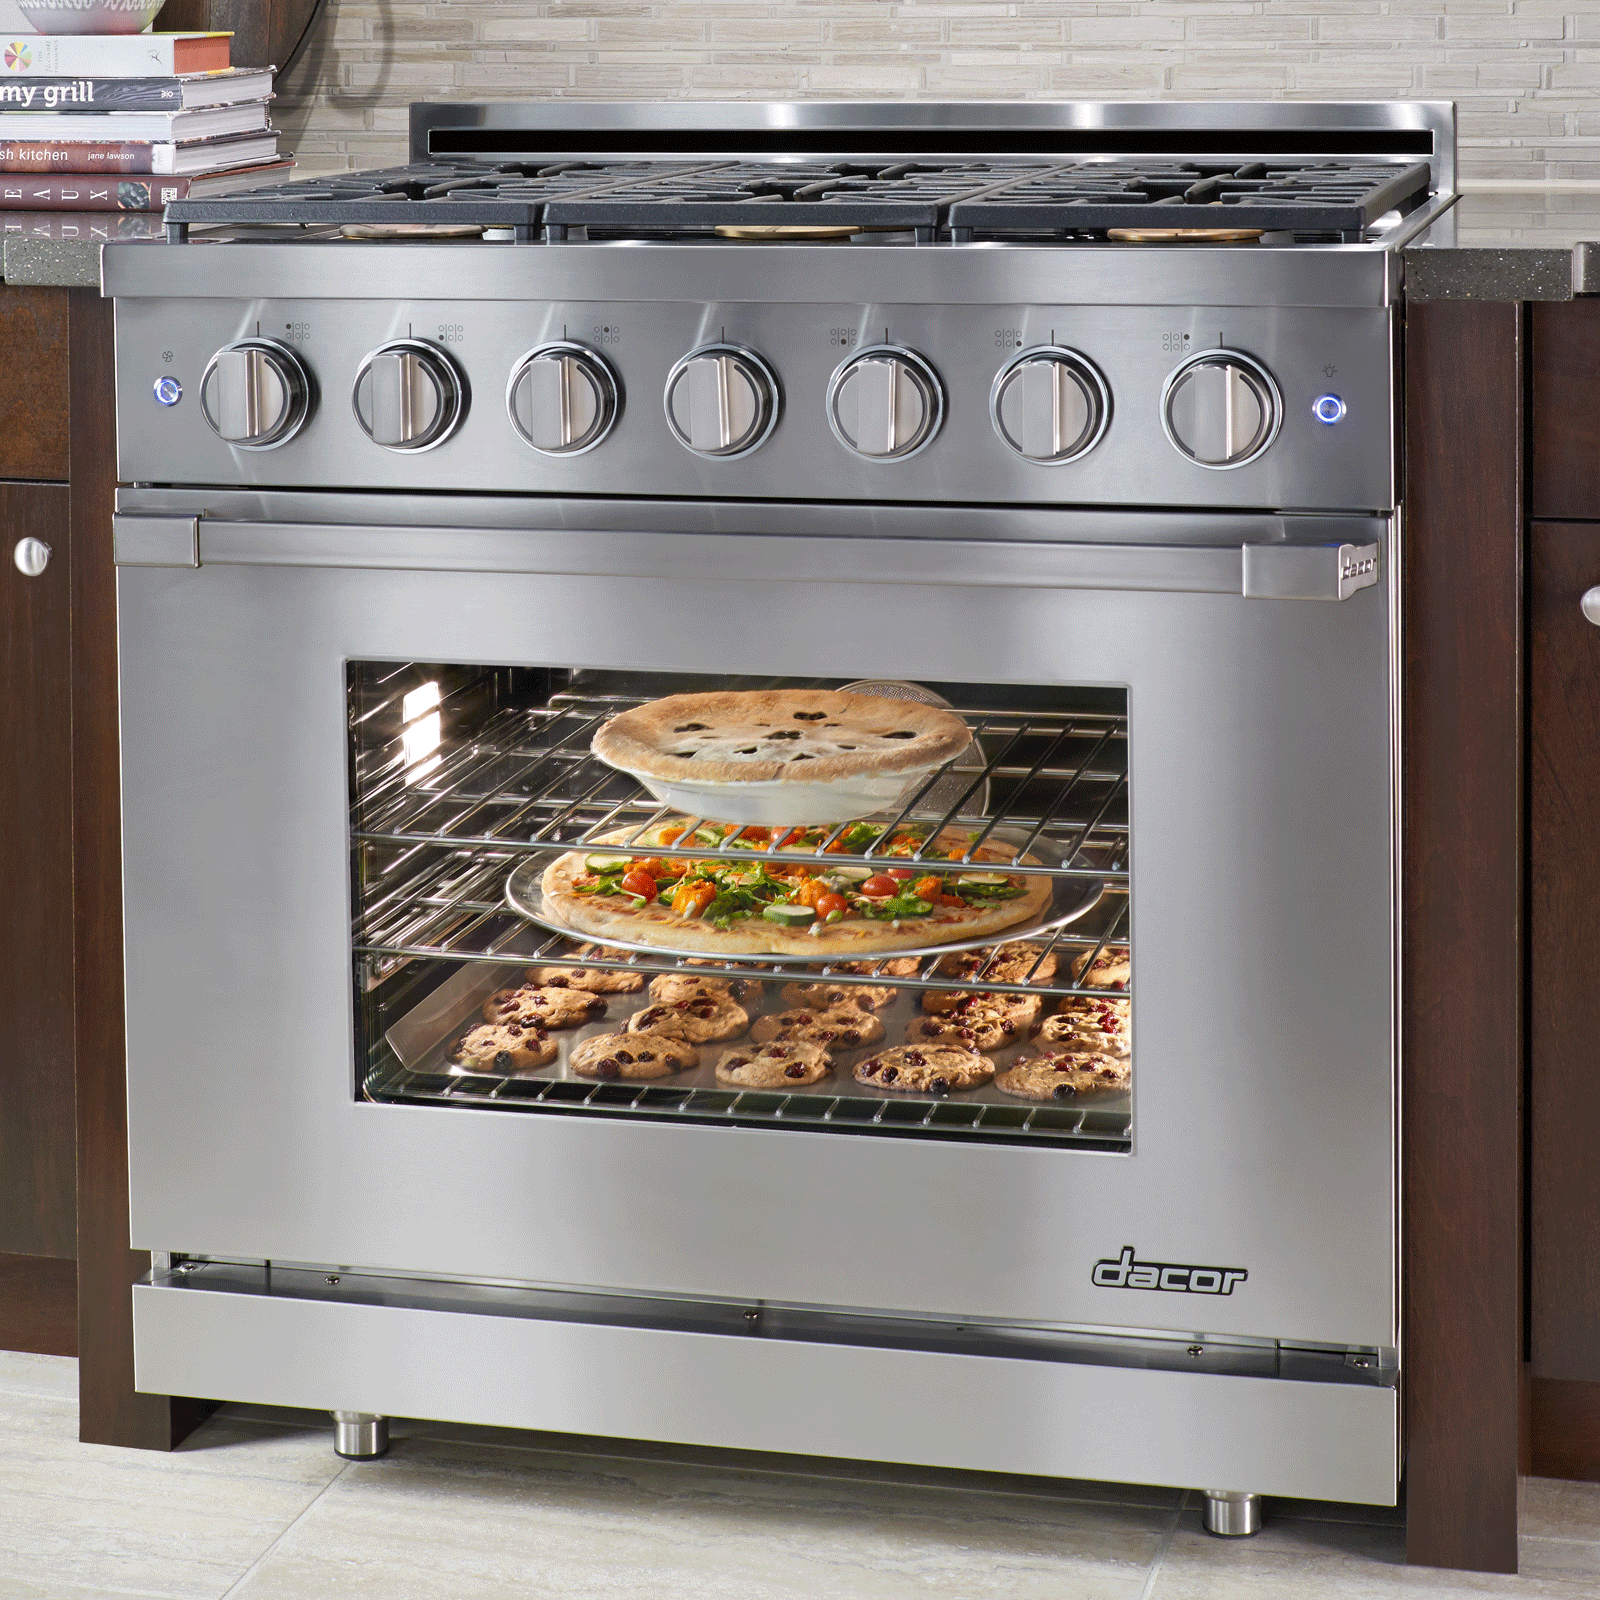 with toaster control self convection ge gas steel stainless clean front range and web slide oven cleaning in